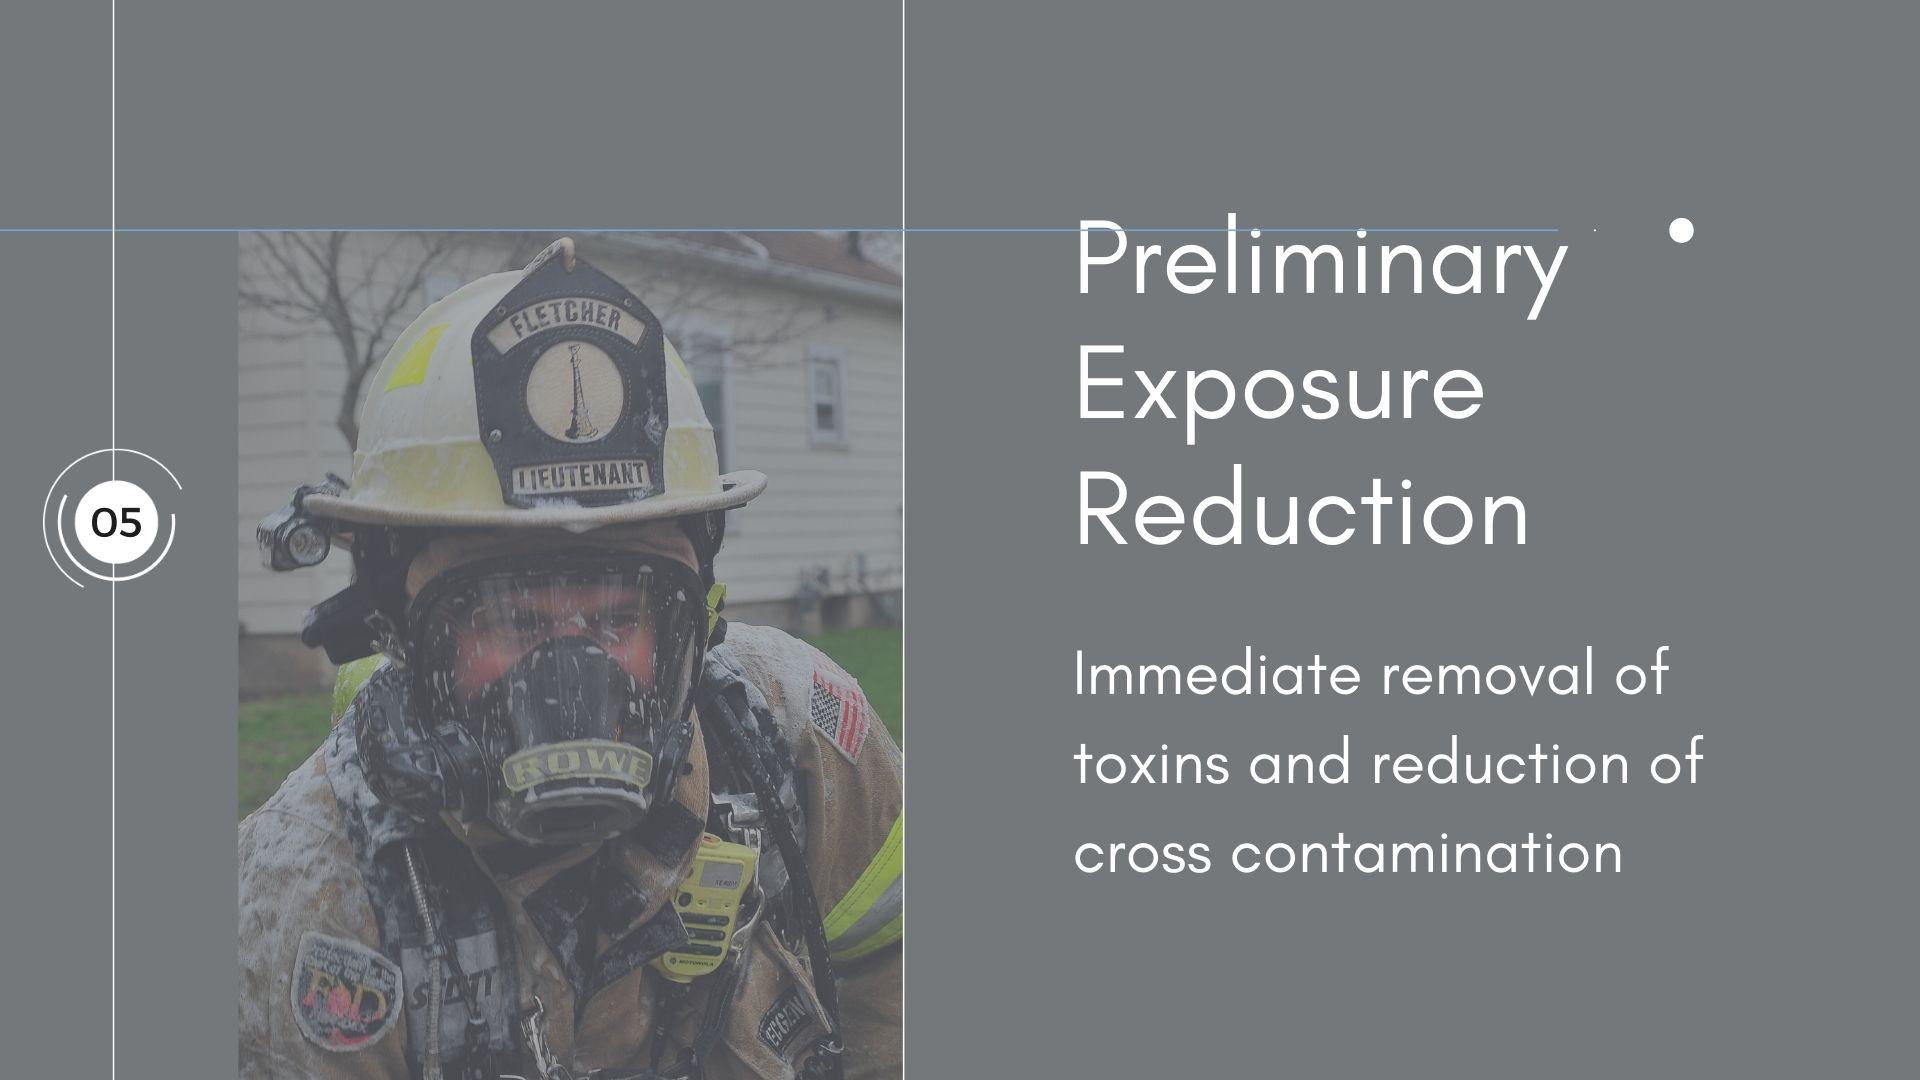 NFPA 1851- Preliminary Exposure Reduction Section